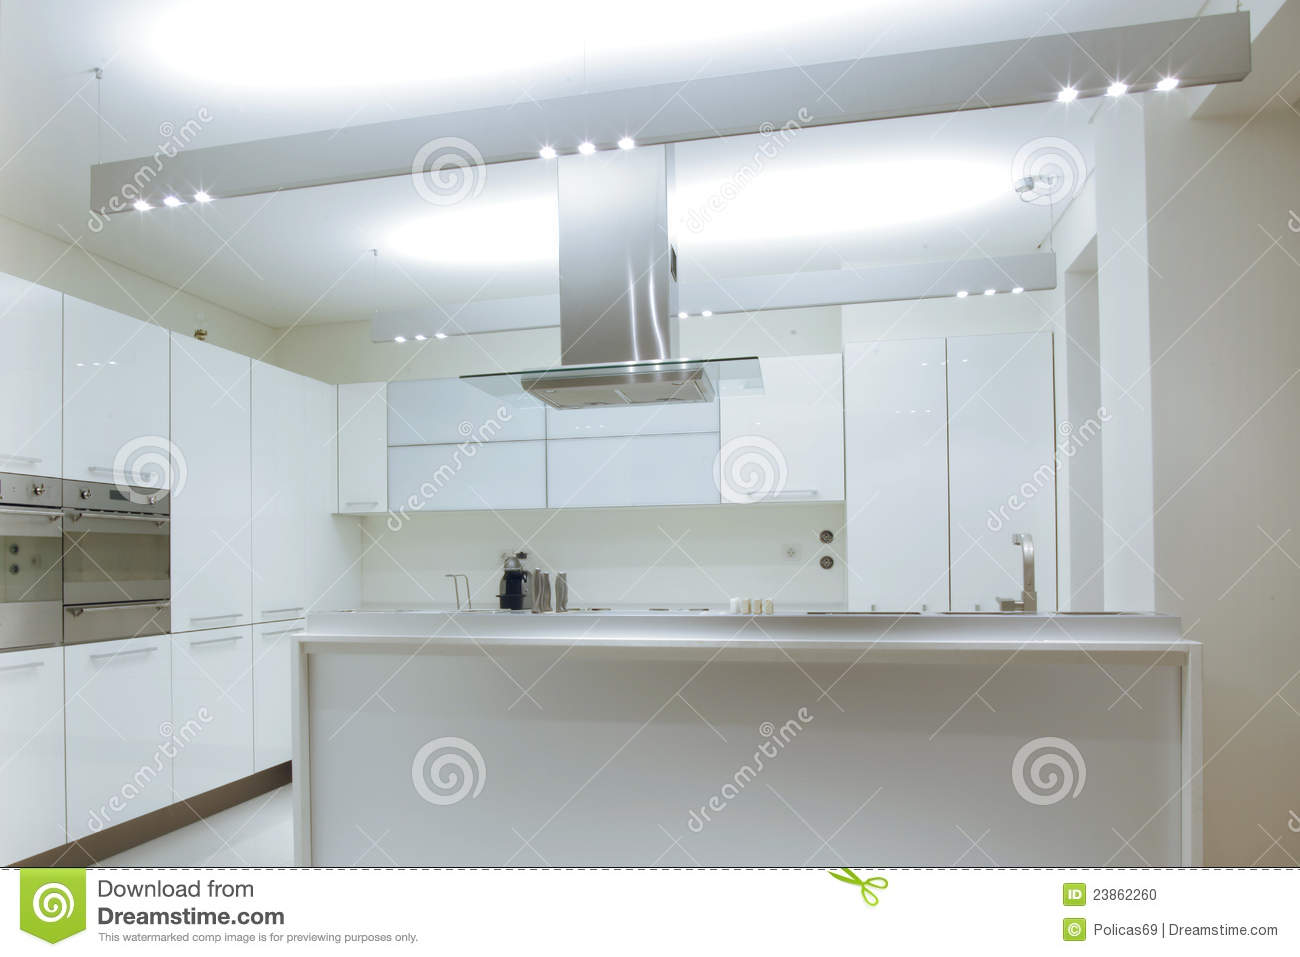 Stock foto: modern white kitchen with wood floor. afbeelding: 23862260